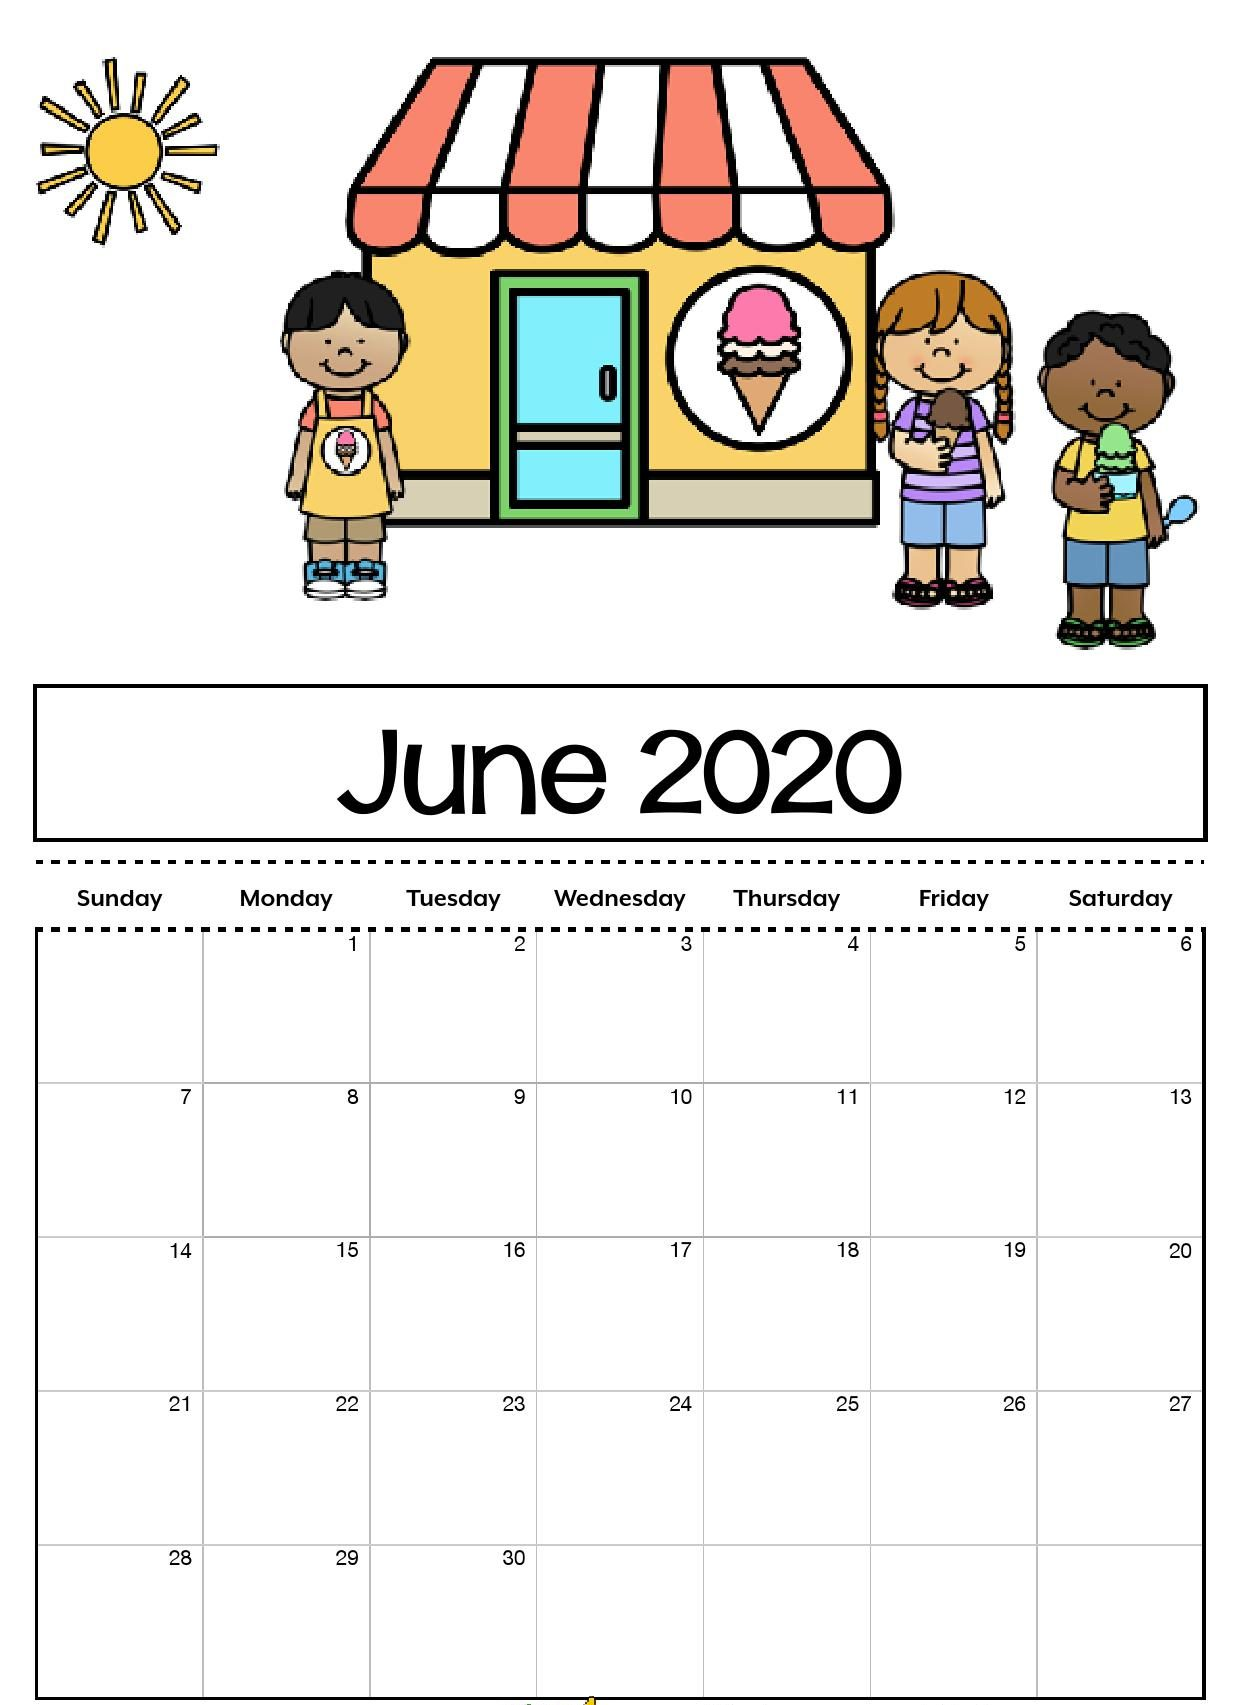 Cute June 2020 Calendar Printable for Kids